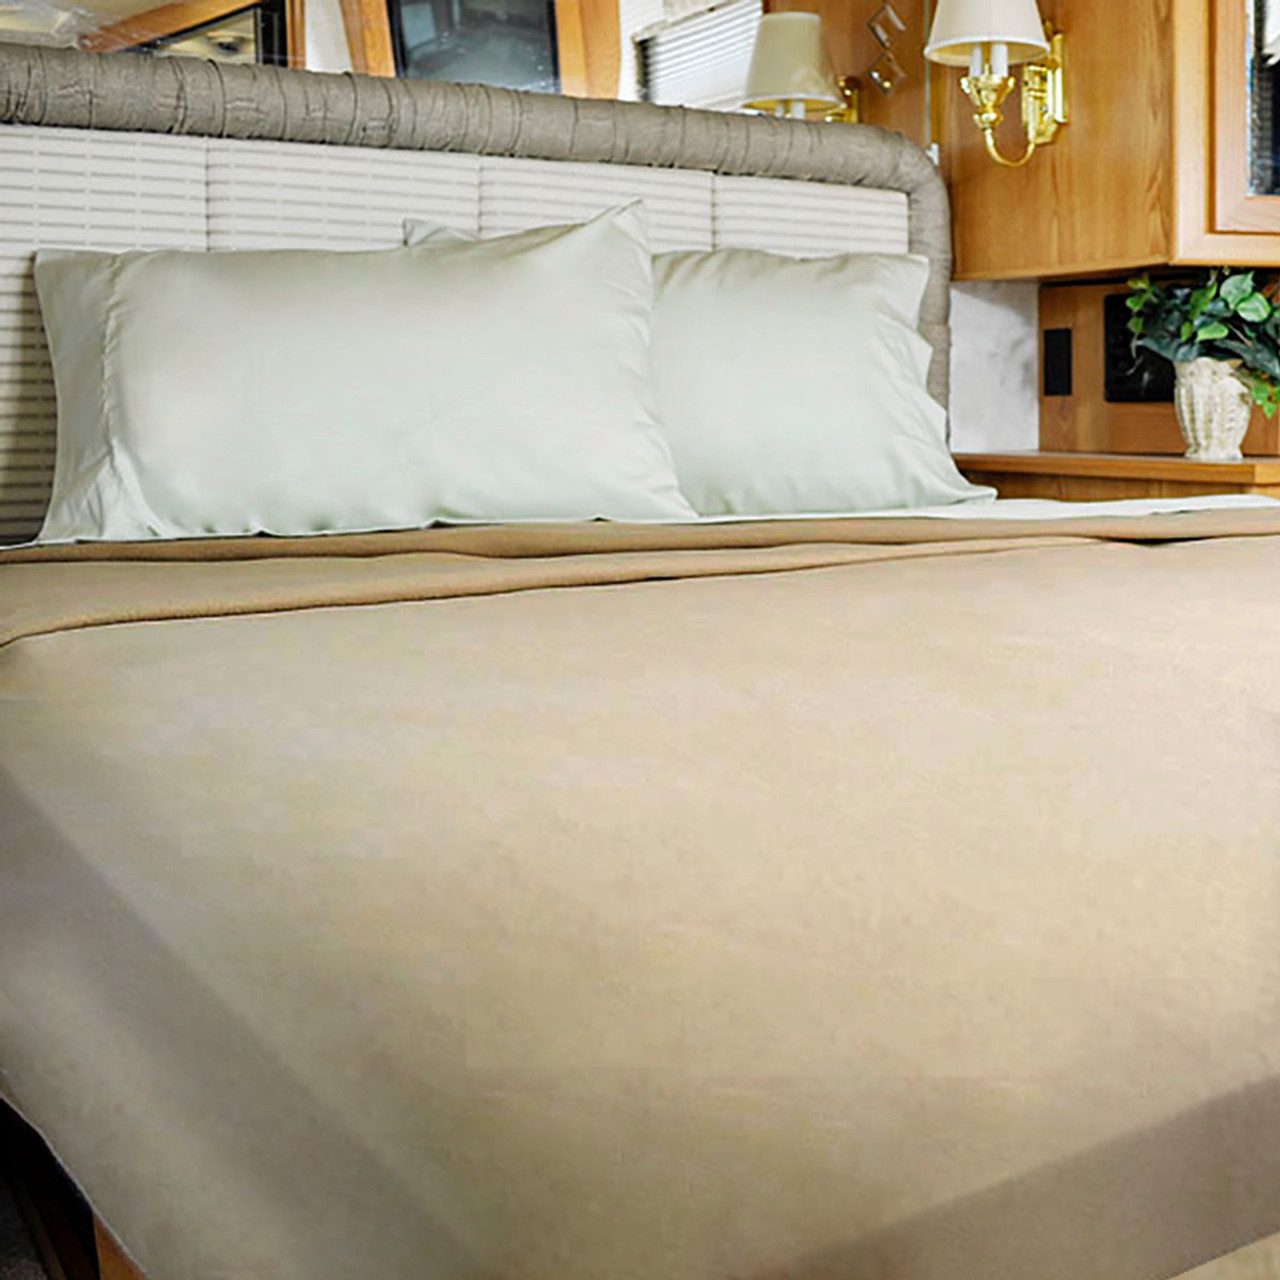 Picture of: Ab Lifestyles Quality Bedding For Airstream Rv Sheets Mattresses Bedspreads Comforters Pillows Blankets Towels Gifts